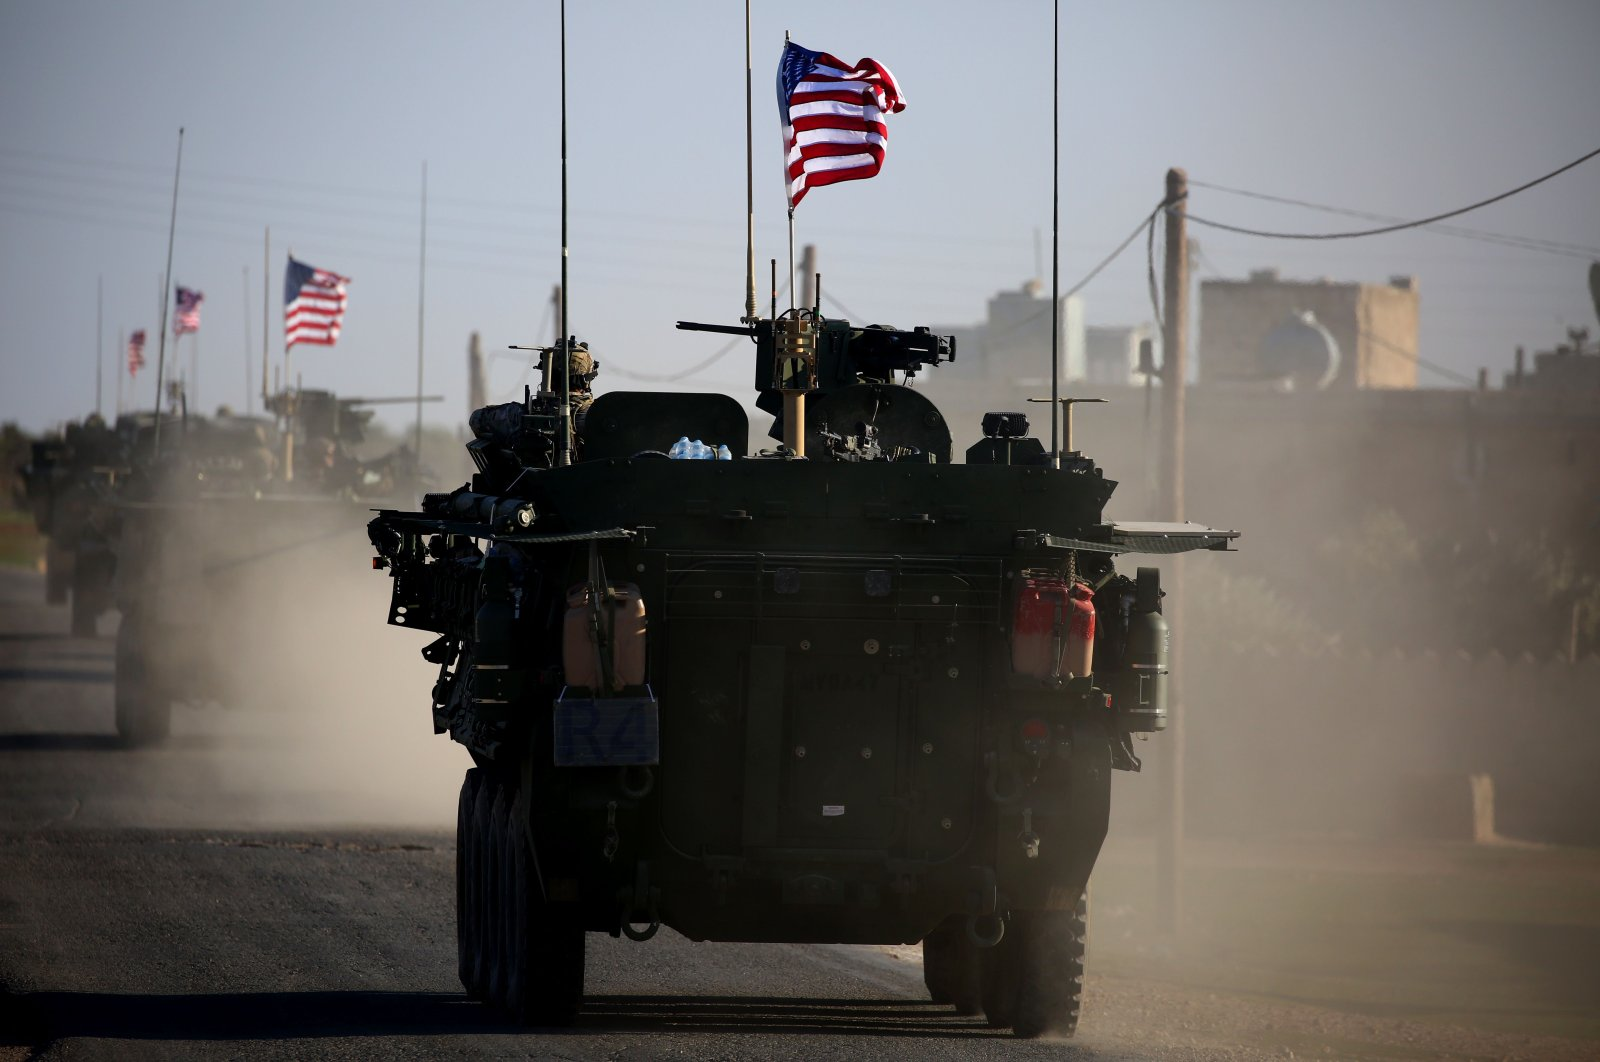 A convoy of U.S. forces armored vehicles drives near the village of Yalanli, on the western outskirts of the northern Syrian city of Manbij, on March 5, 2017. (AFP File Photo)